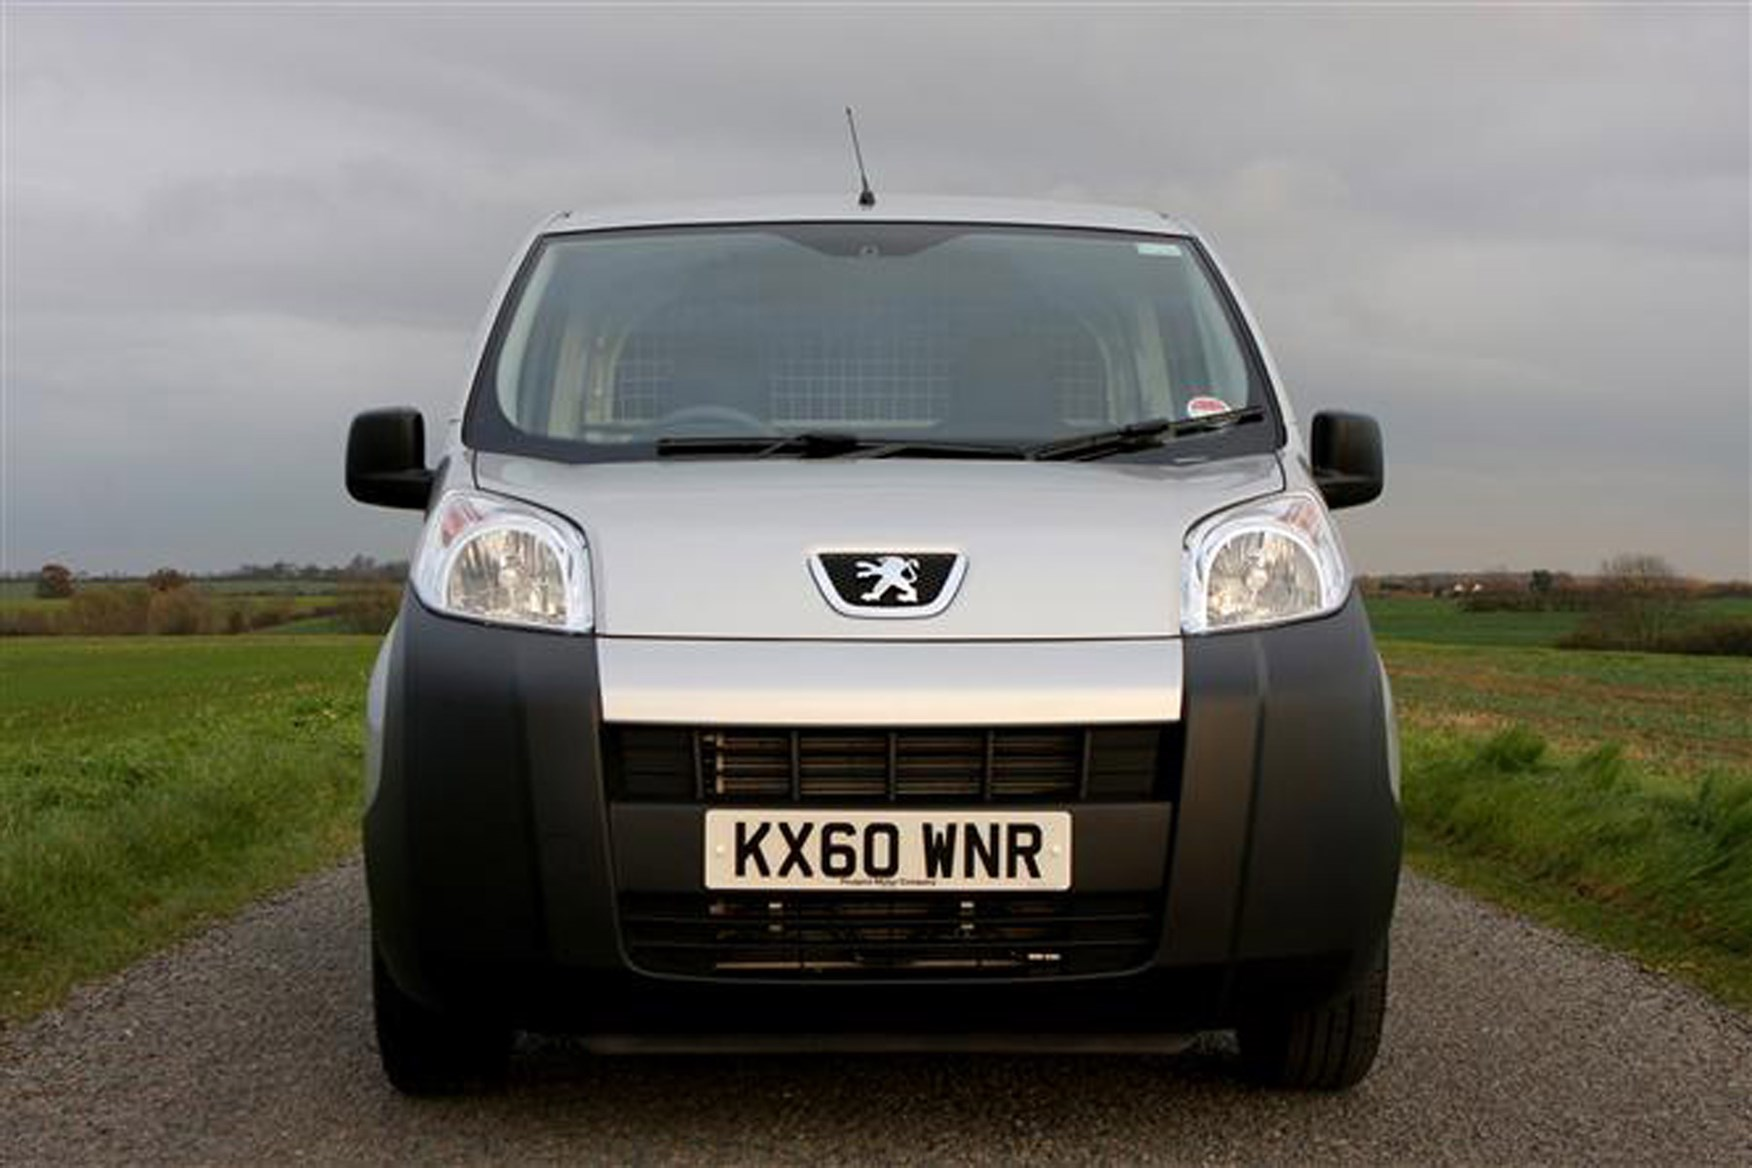 Peugeot Bipper review on Parkers Vans - front